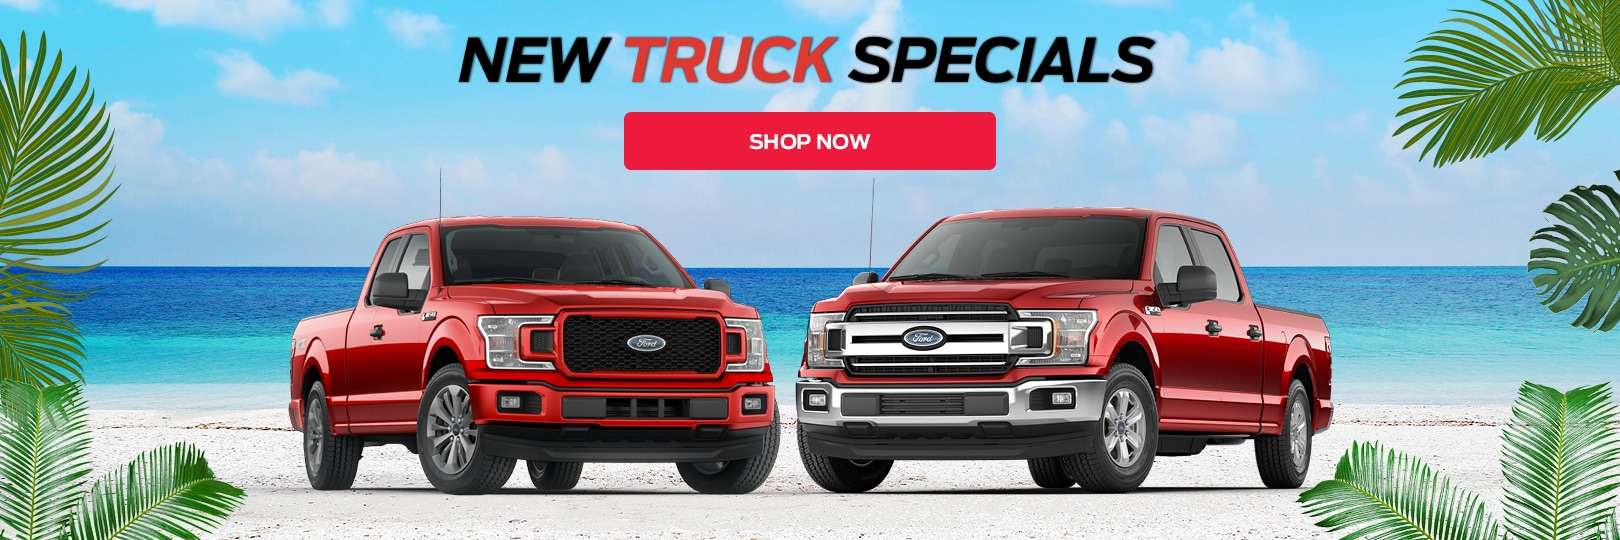 Craigslist Nh Cars And Trucks By Dealer